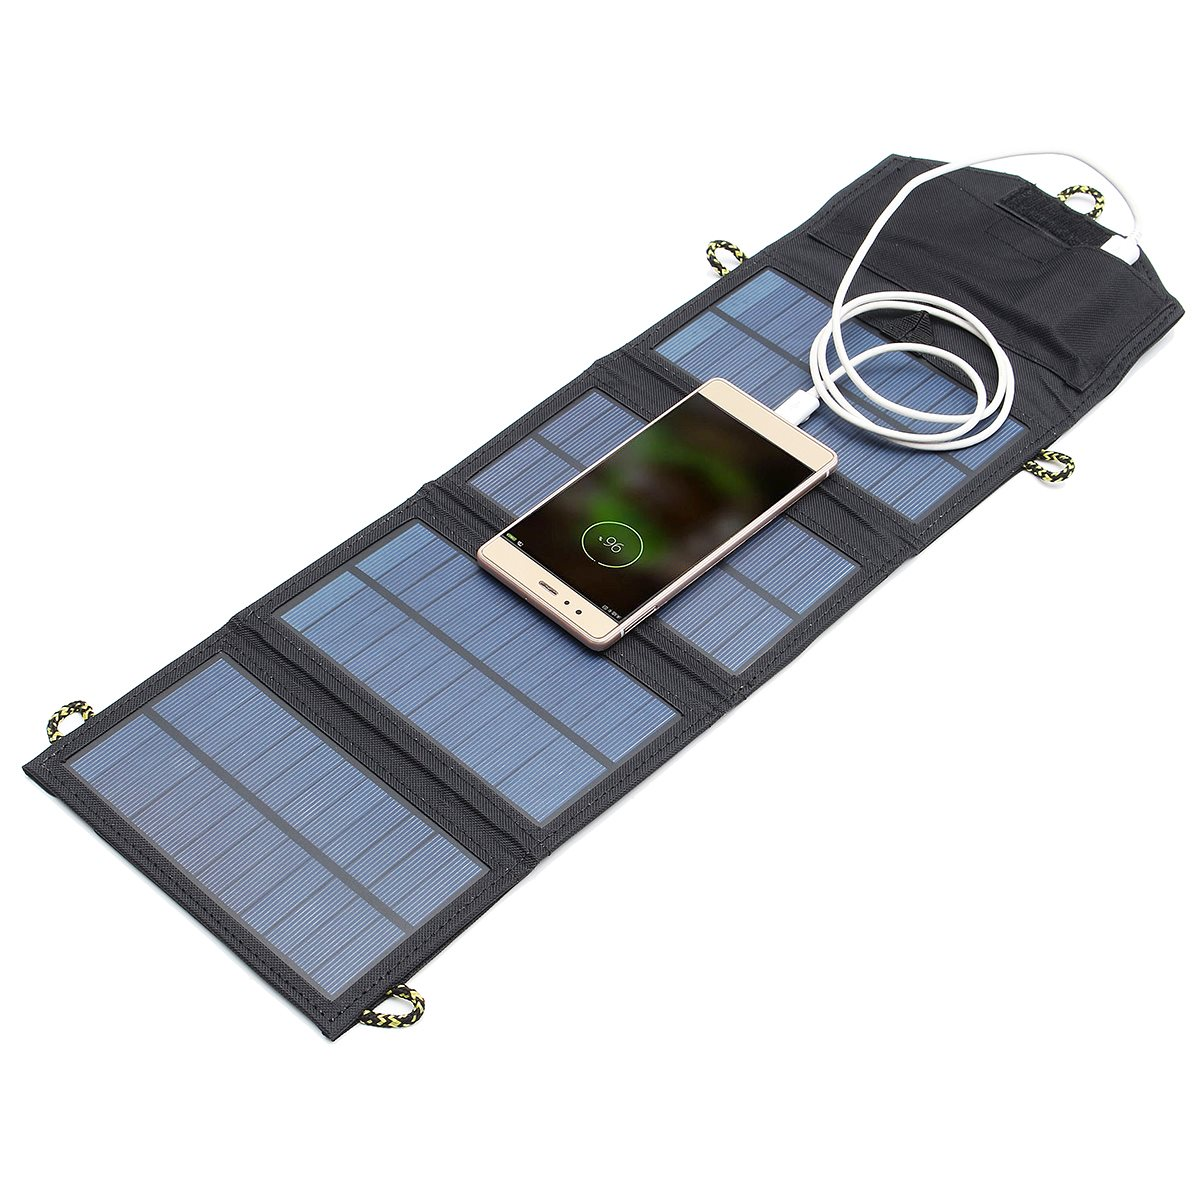 Universal Battery Mobile Cell Phone Charger 7W 5V Portable Folding Solar panel Charger Charging outdoor convenient tools